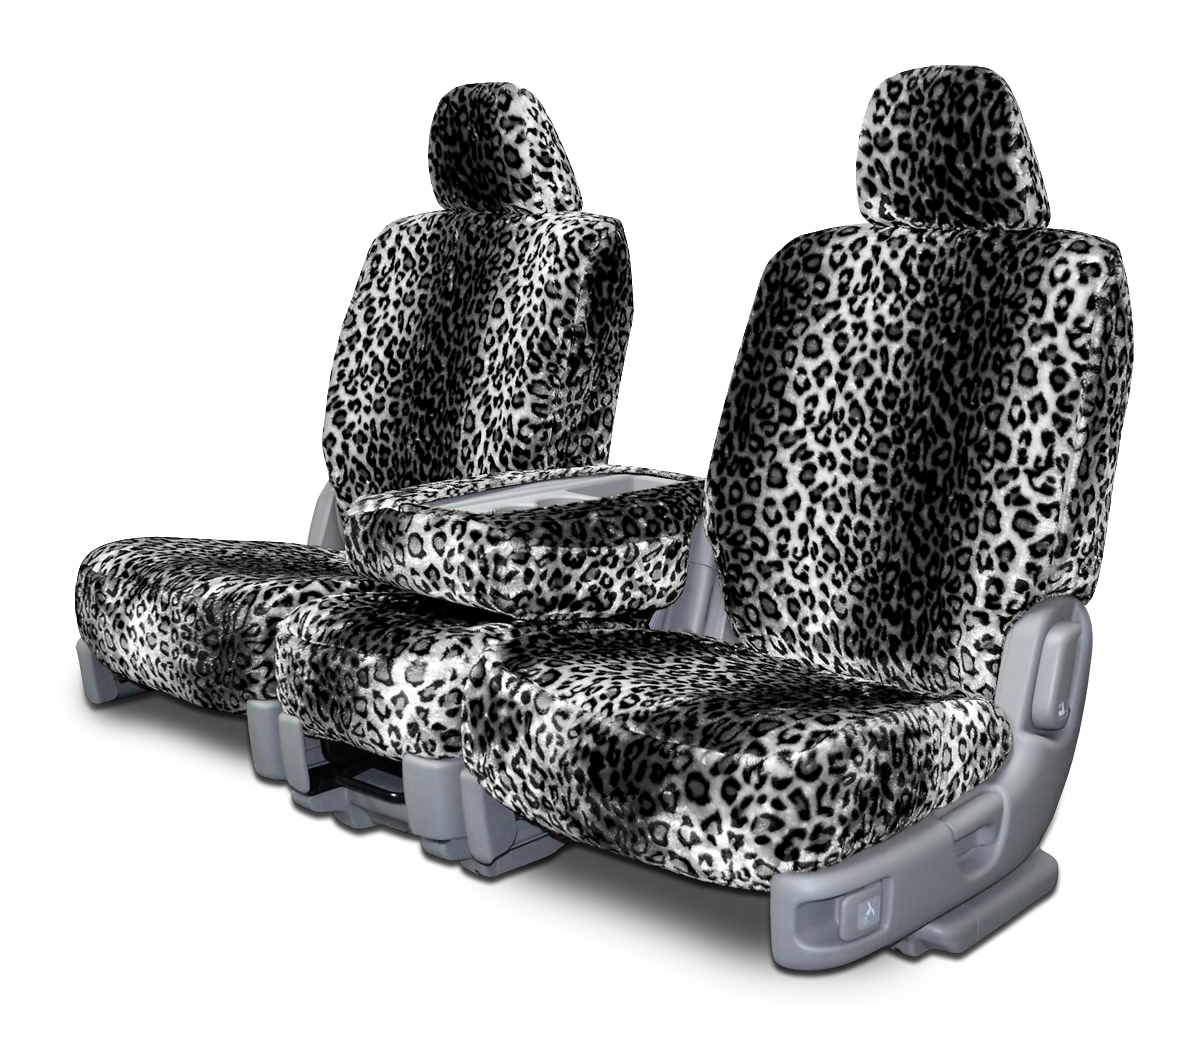 Seat Covers Leopard Seat Covers